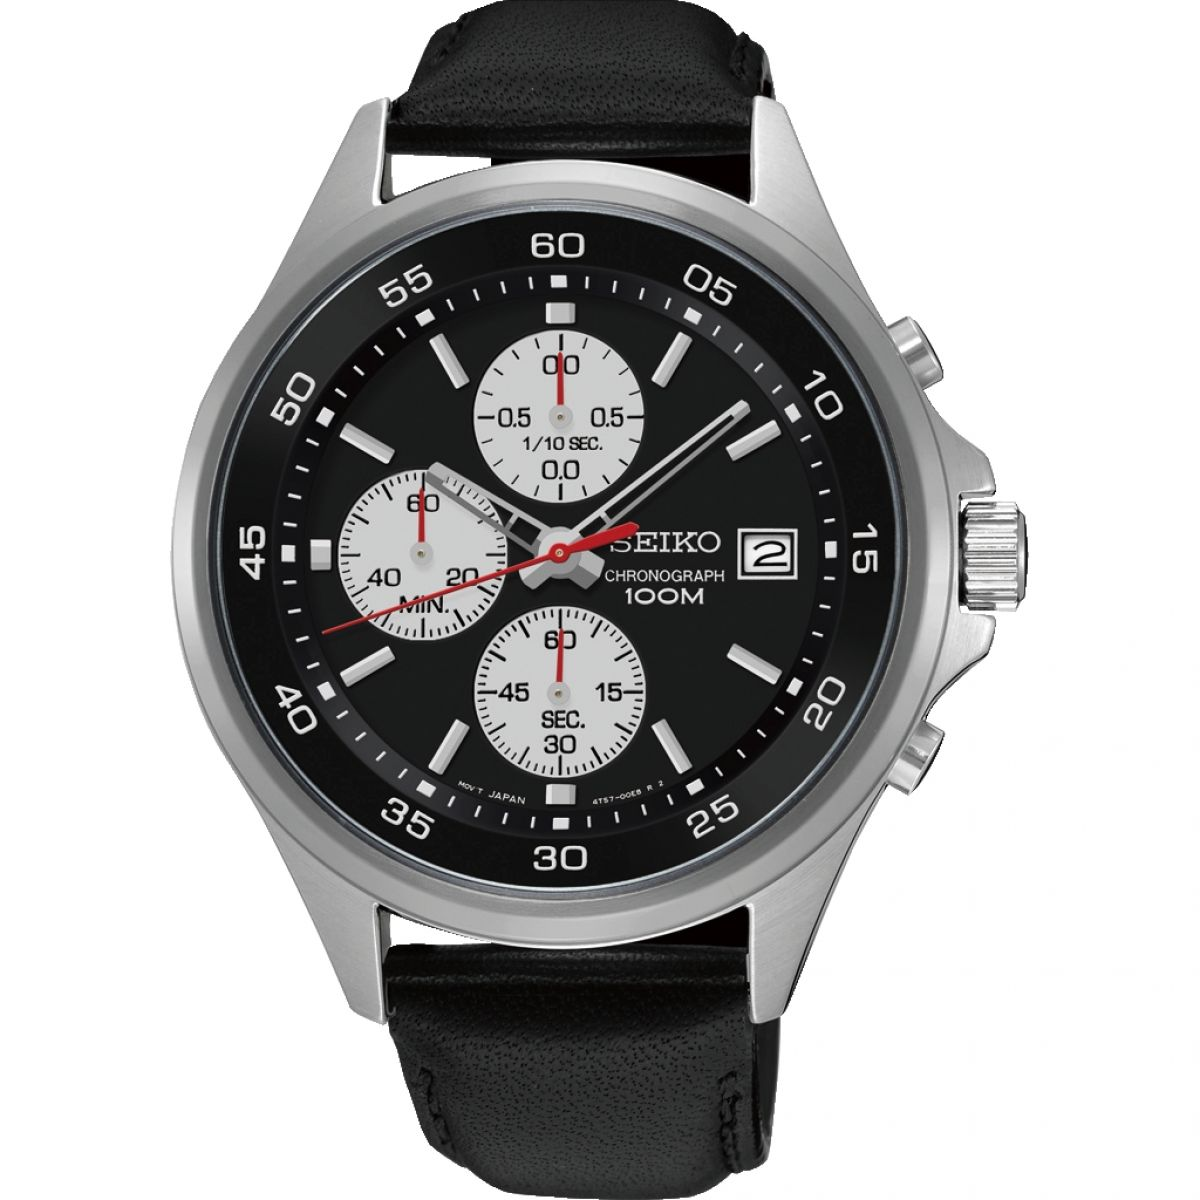 geckota ablogtowatch watches releases watch racing c chronograph